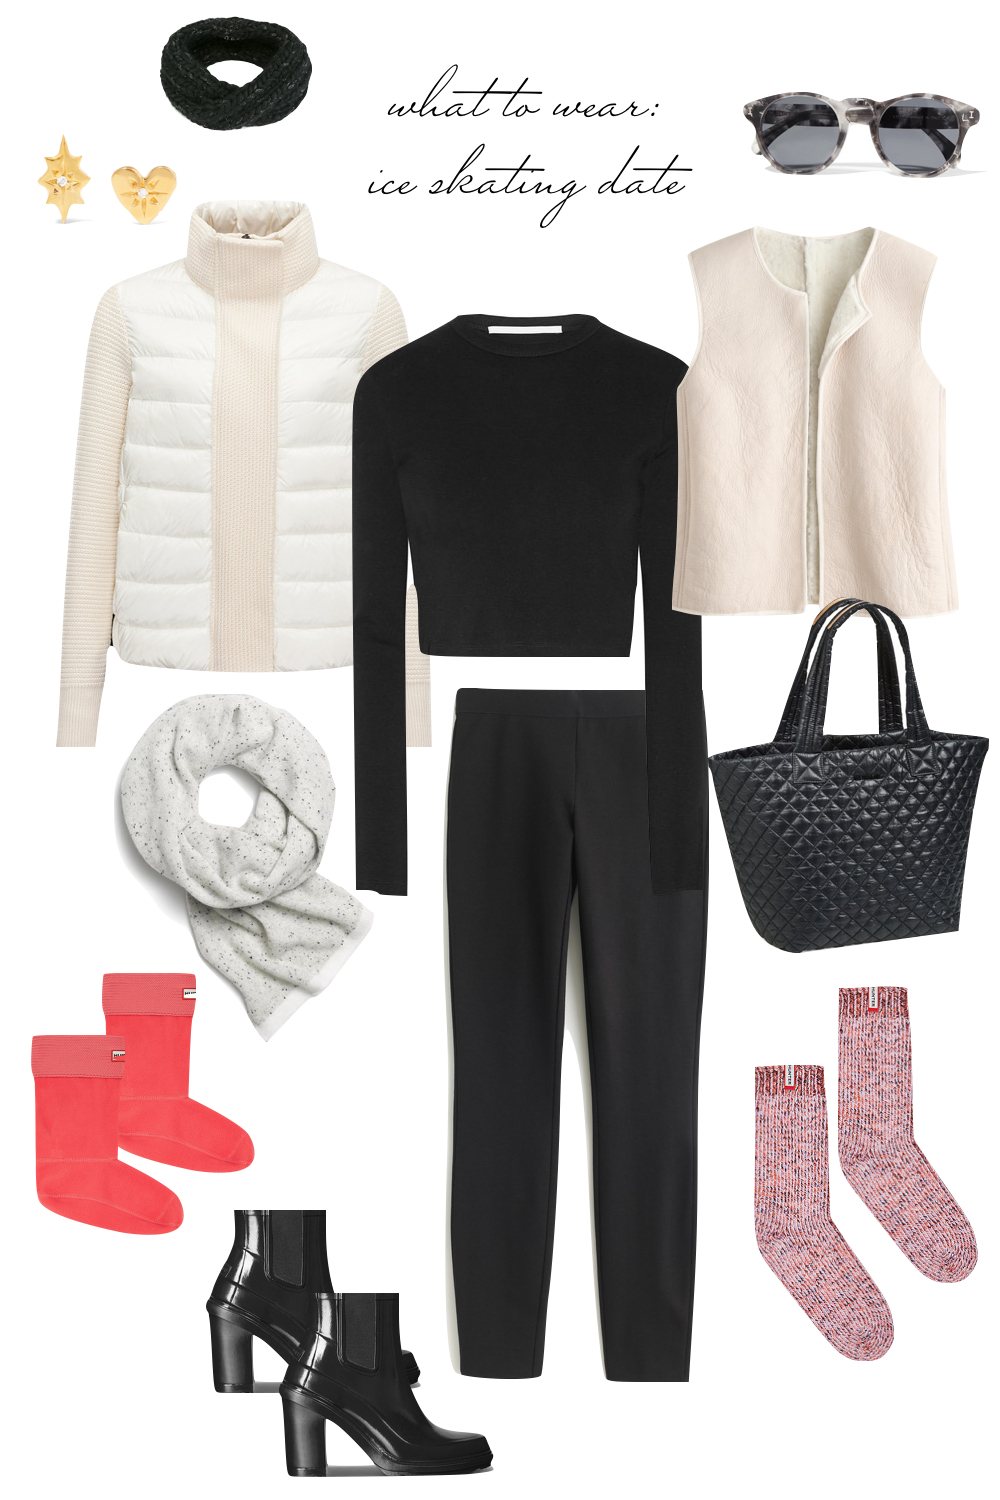 Date Night Outfit Ideas - What to Wear on an Ice Skating Date! Emily Holmes Hahn, Last First NYC - for The Stripe Blog